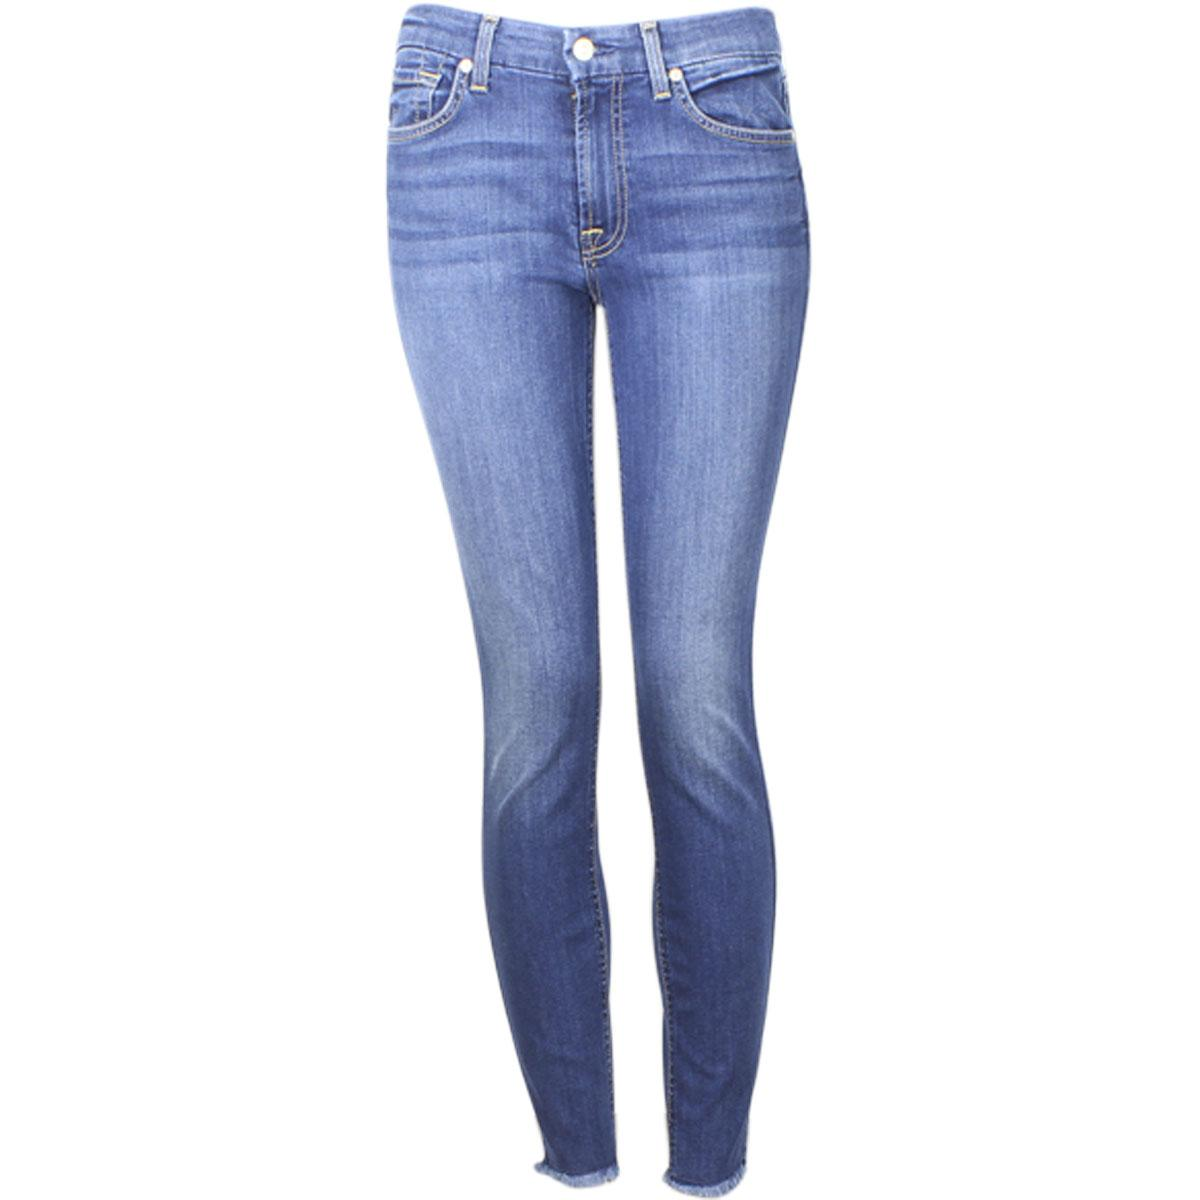 Image of 7 For All Mankind Women's (B)Air Denim The Ankle Skinny Raw Hem Jeans - Blue - 30 (9/10)